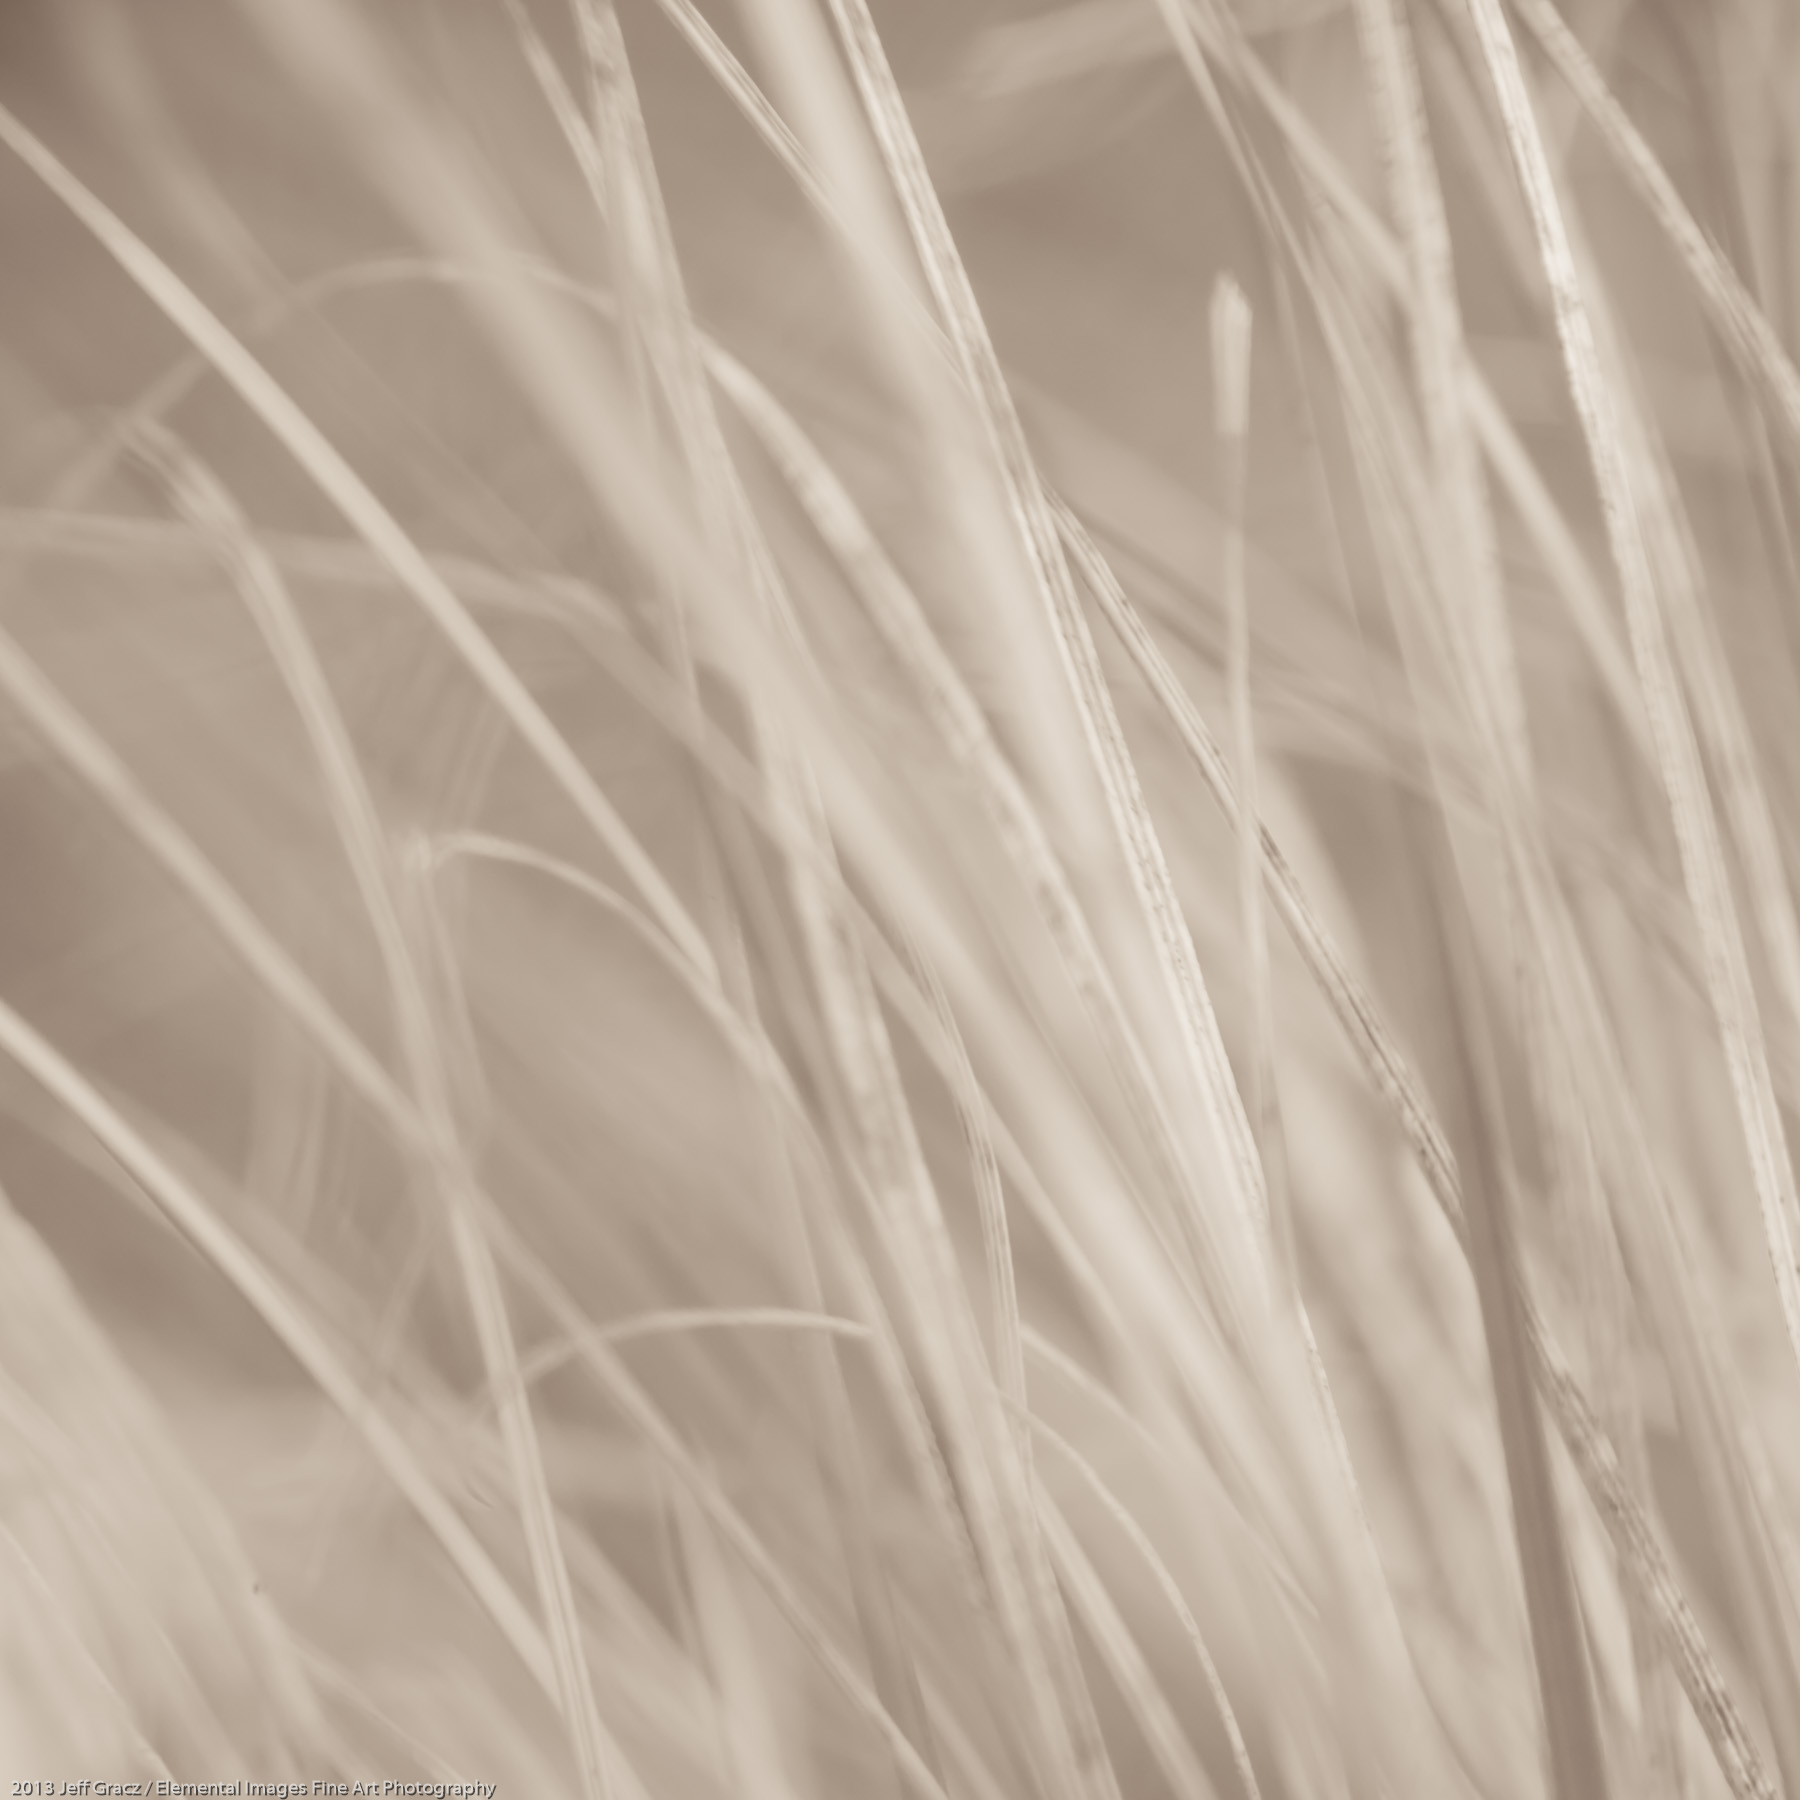 Grasses XXXV | Portland | OR | USA - © 2013 Jeff Gracz / Elemental Images Fine Art Photography - All Rights Reserved Worldwide